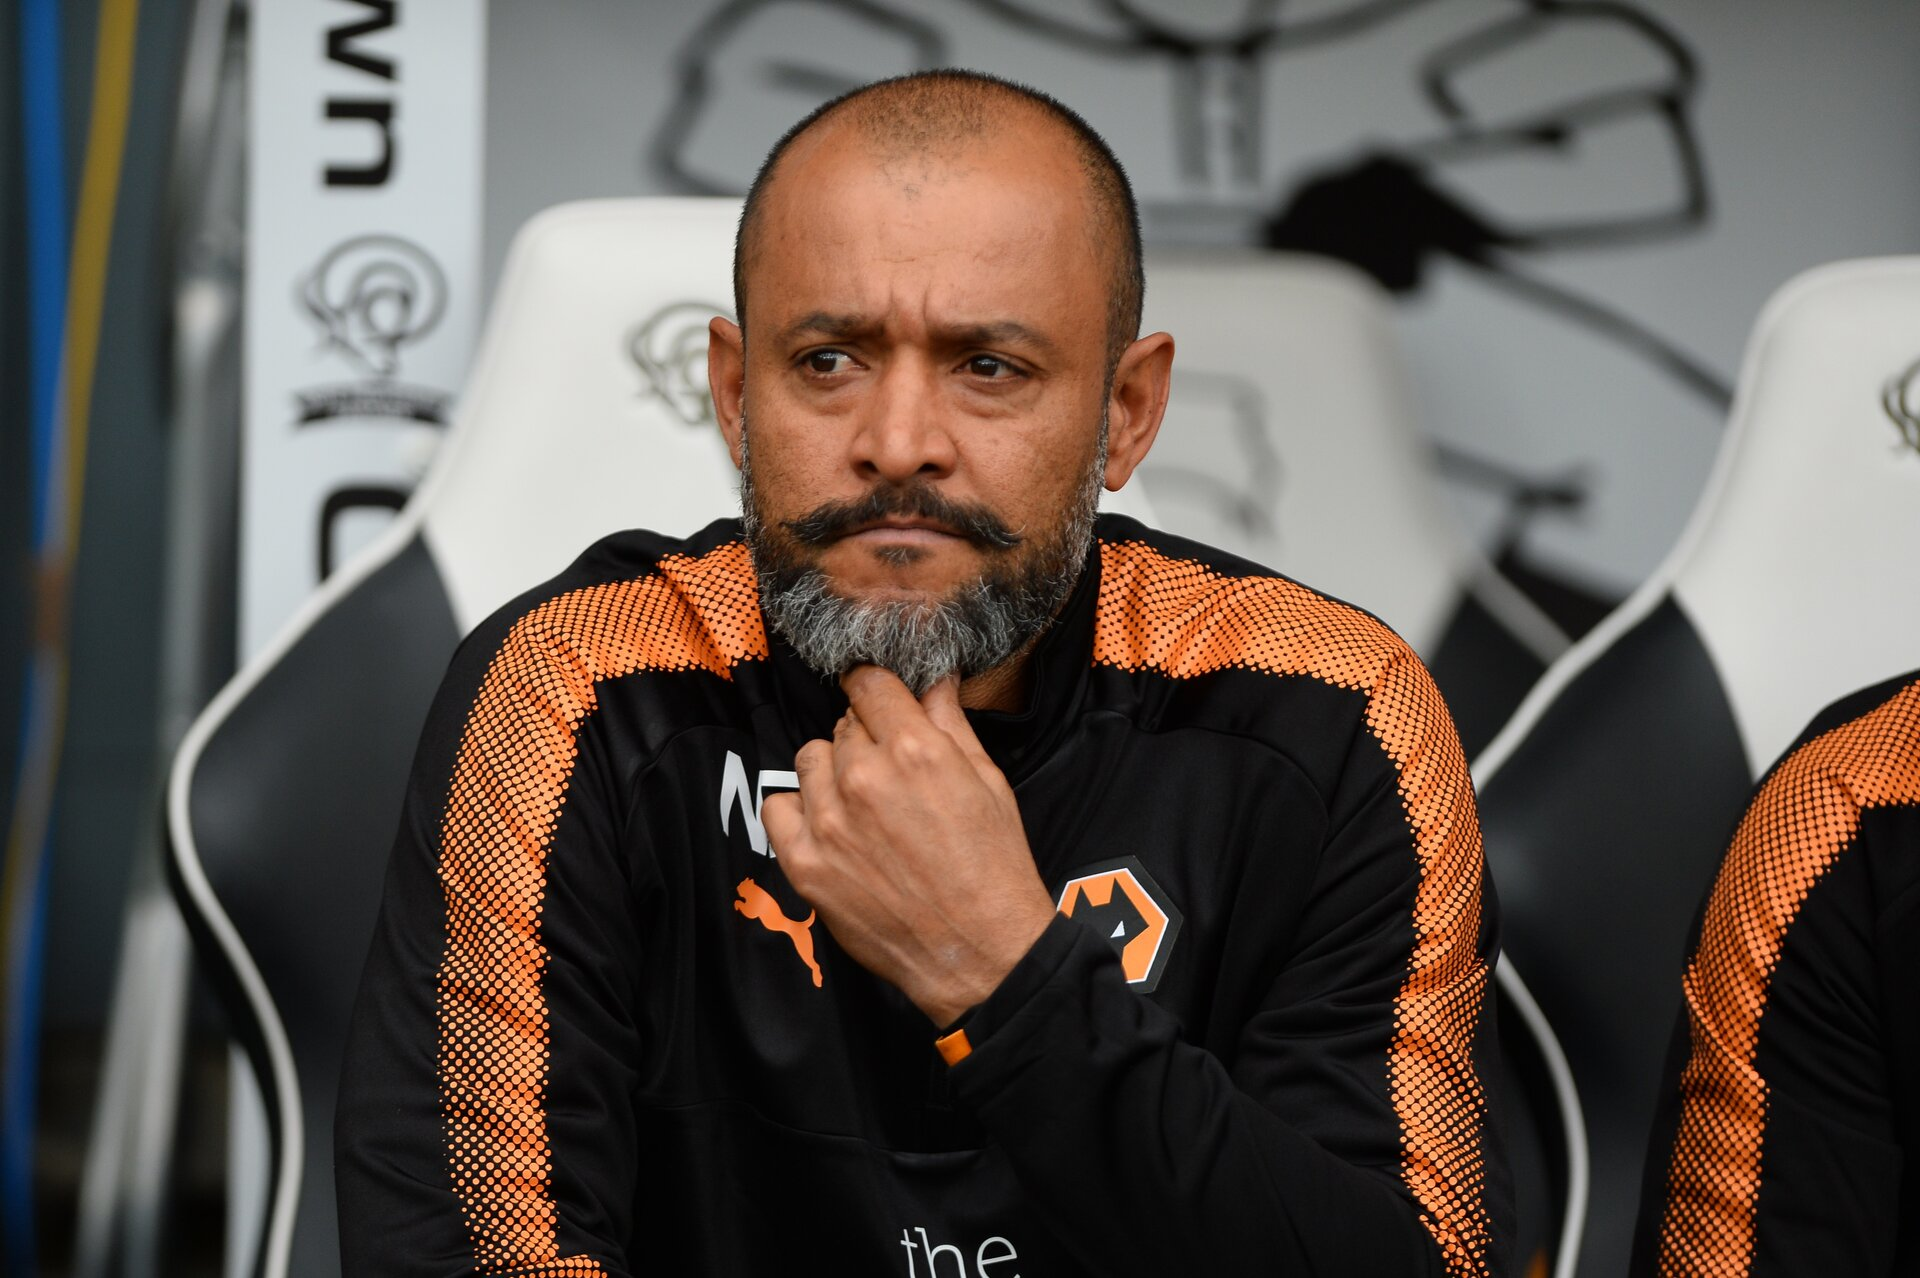 DERBY, ENGLAND - AUGUST 12: Nuno Espírito Santo manager of Wolves looks on during the Sky Bet Championship match between Derby County and Wolverhampton at iPro Stadium on August 12, 2017 in Derby, England. (Photo by Nathan Stirk/Getty Images)